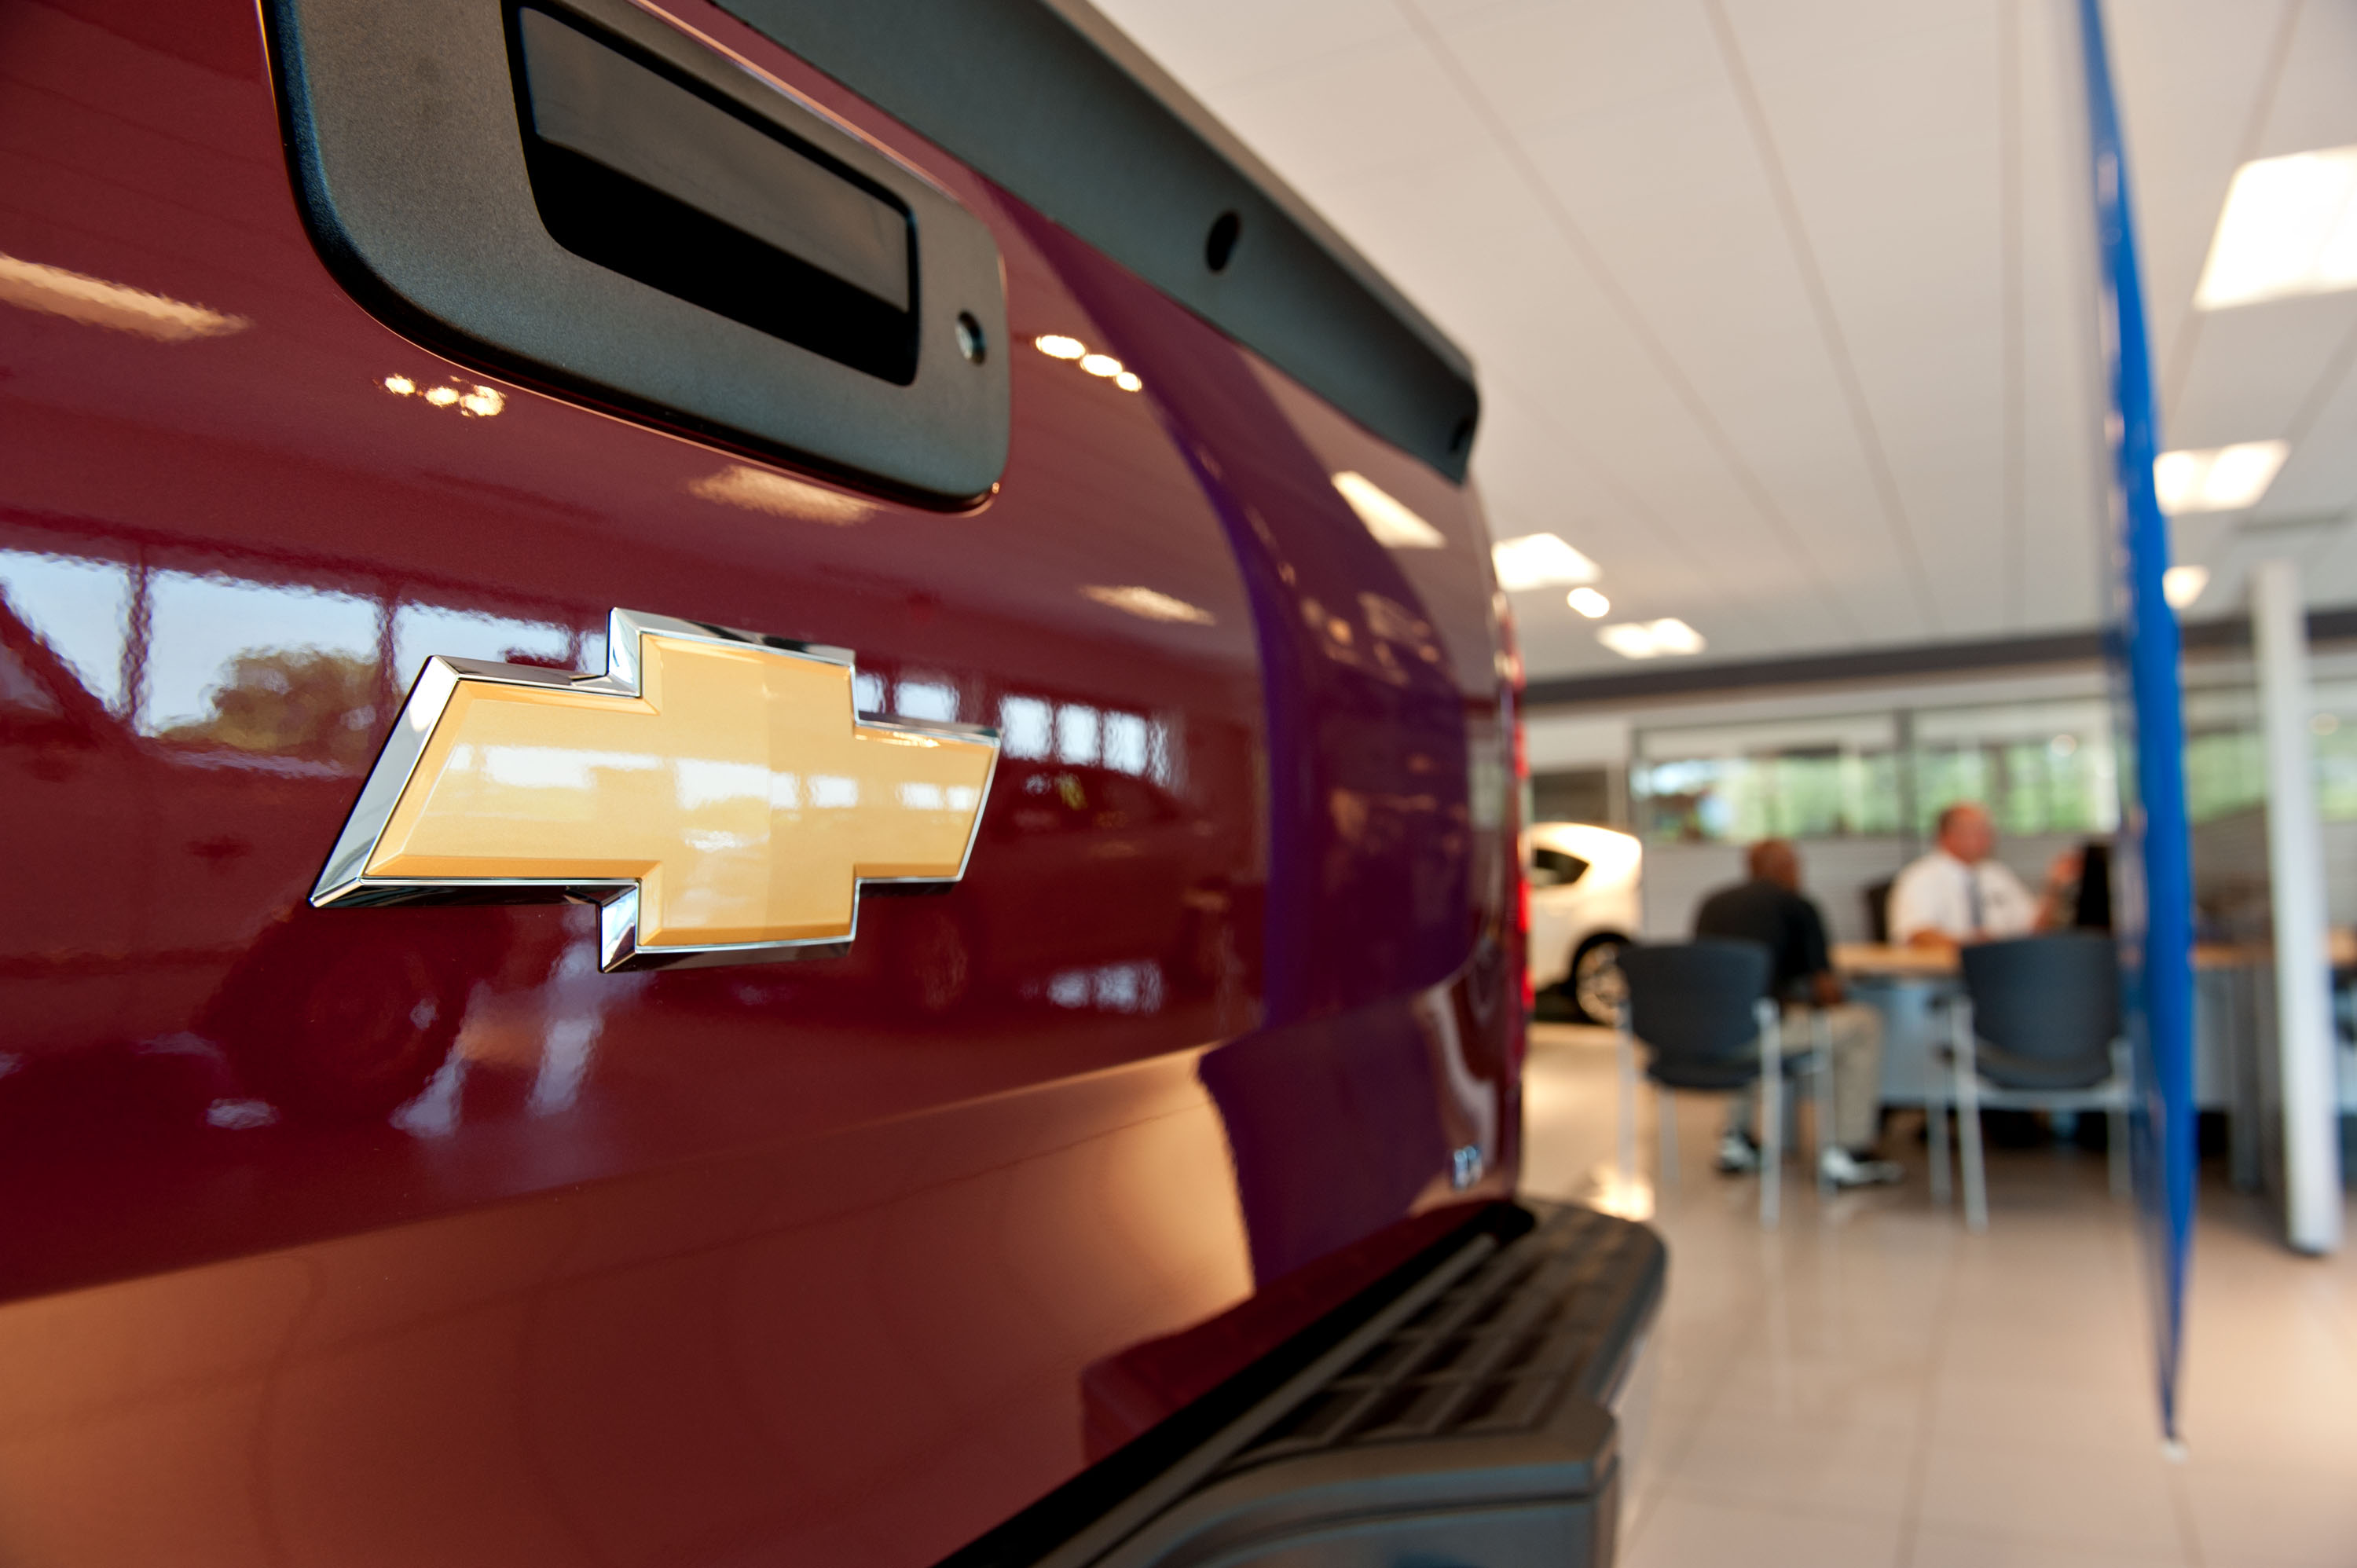 A customer talks with a sales person near a Chevrolet truck on display in the showroom of a General Motors Co. dealership in Peoria, Ill.